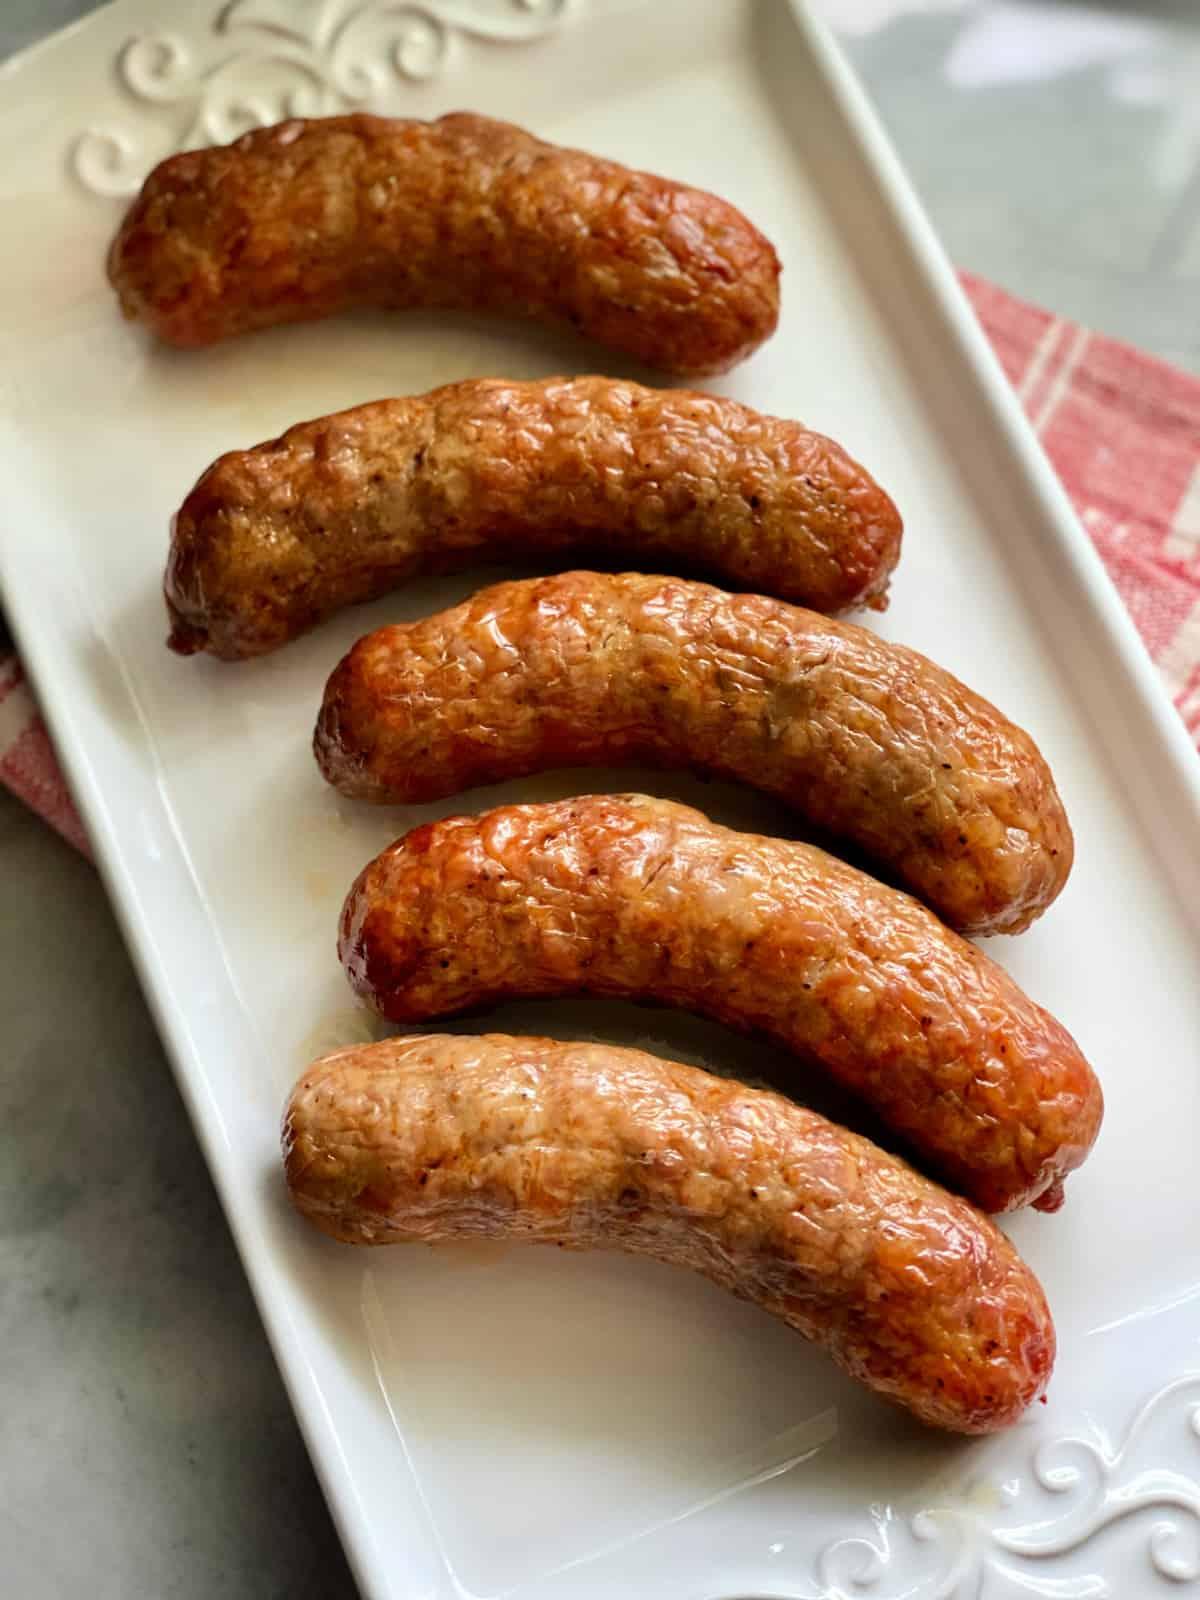 Top view of 5 crispy sausage links on a white platter with red and white striped napkin underneath it